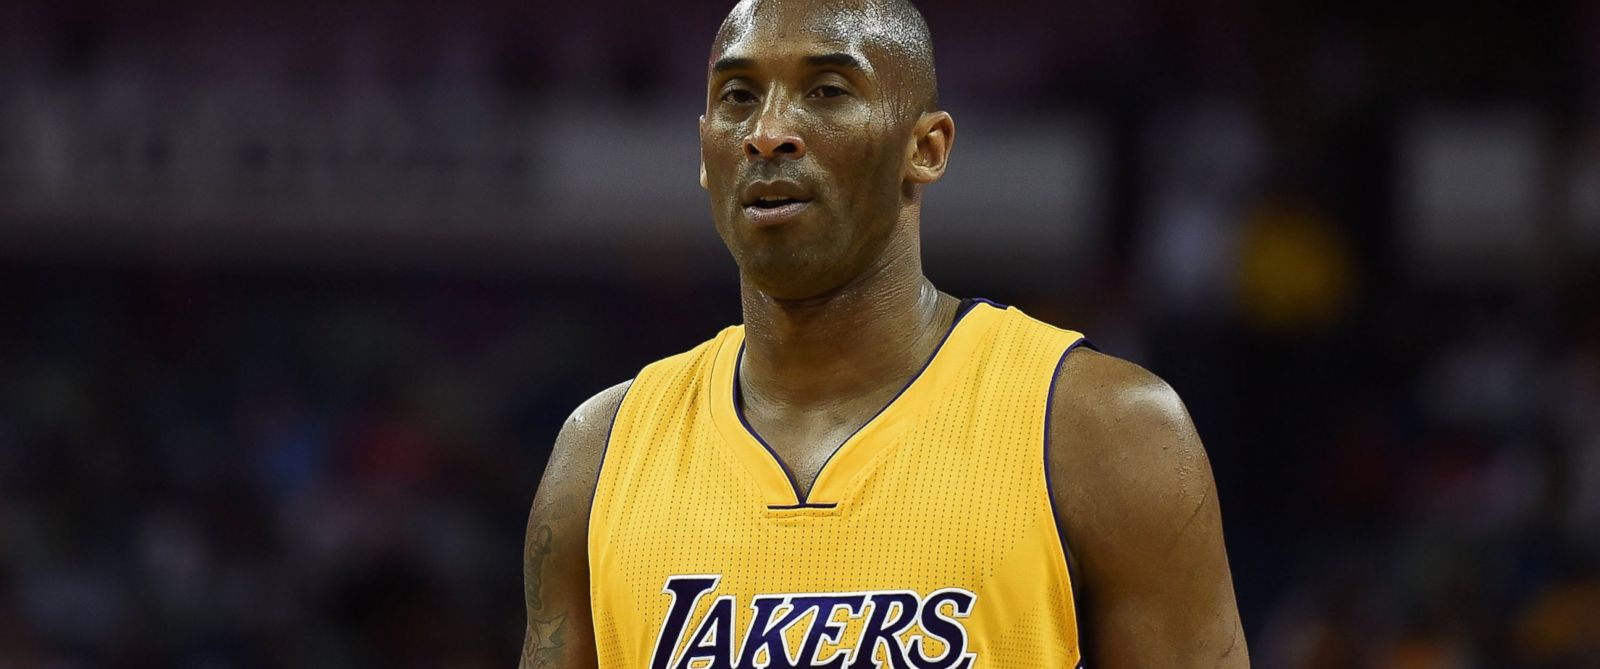 The Stunning Prices People Are Paying to Watch Kobe Bryant ...